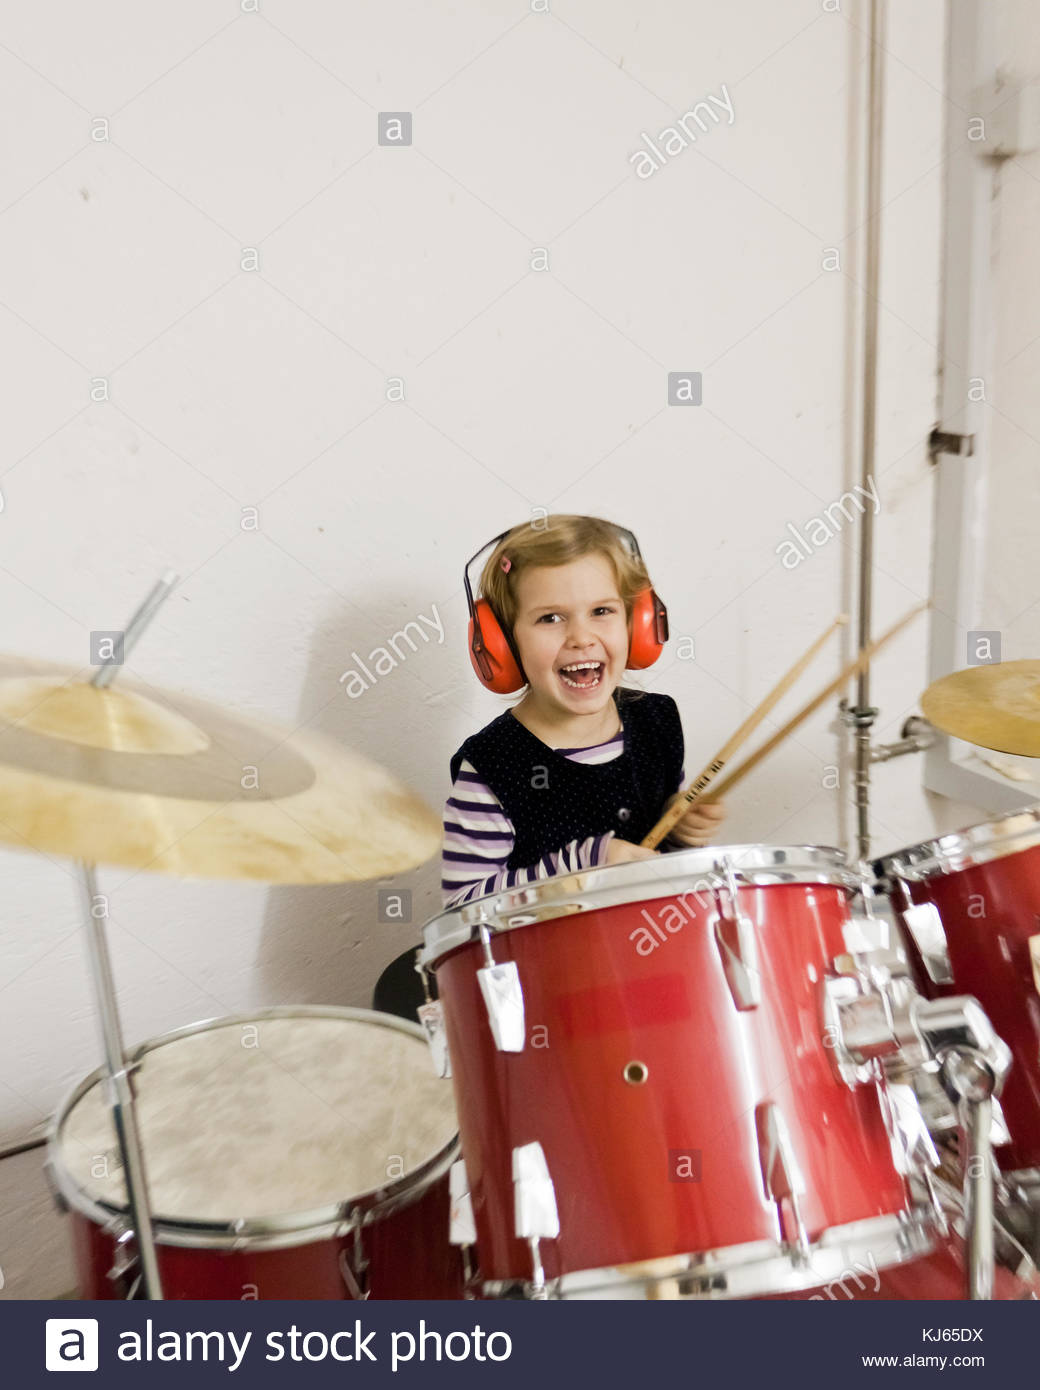 Little girl enjoying playing the drums - Stock Image